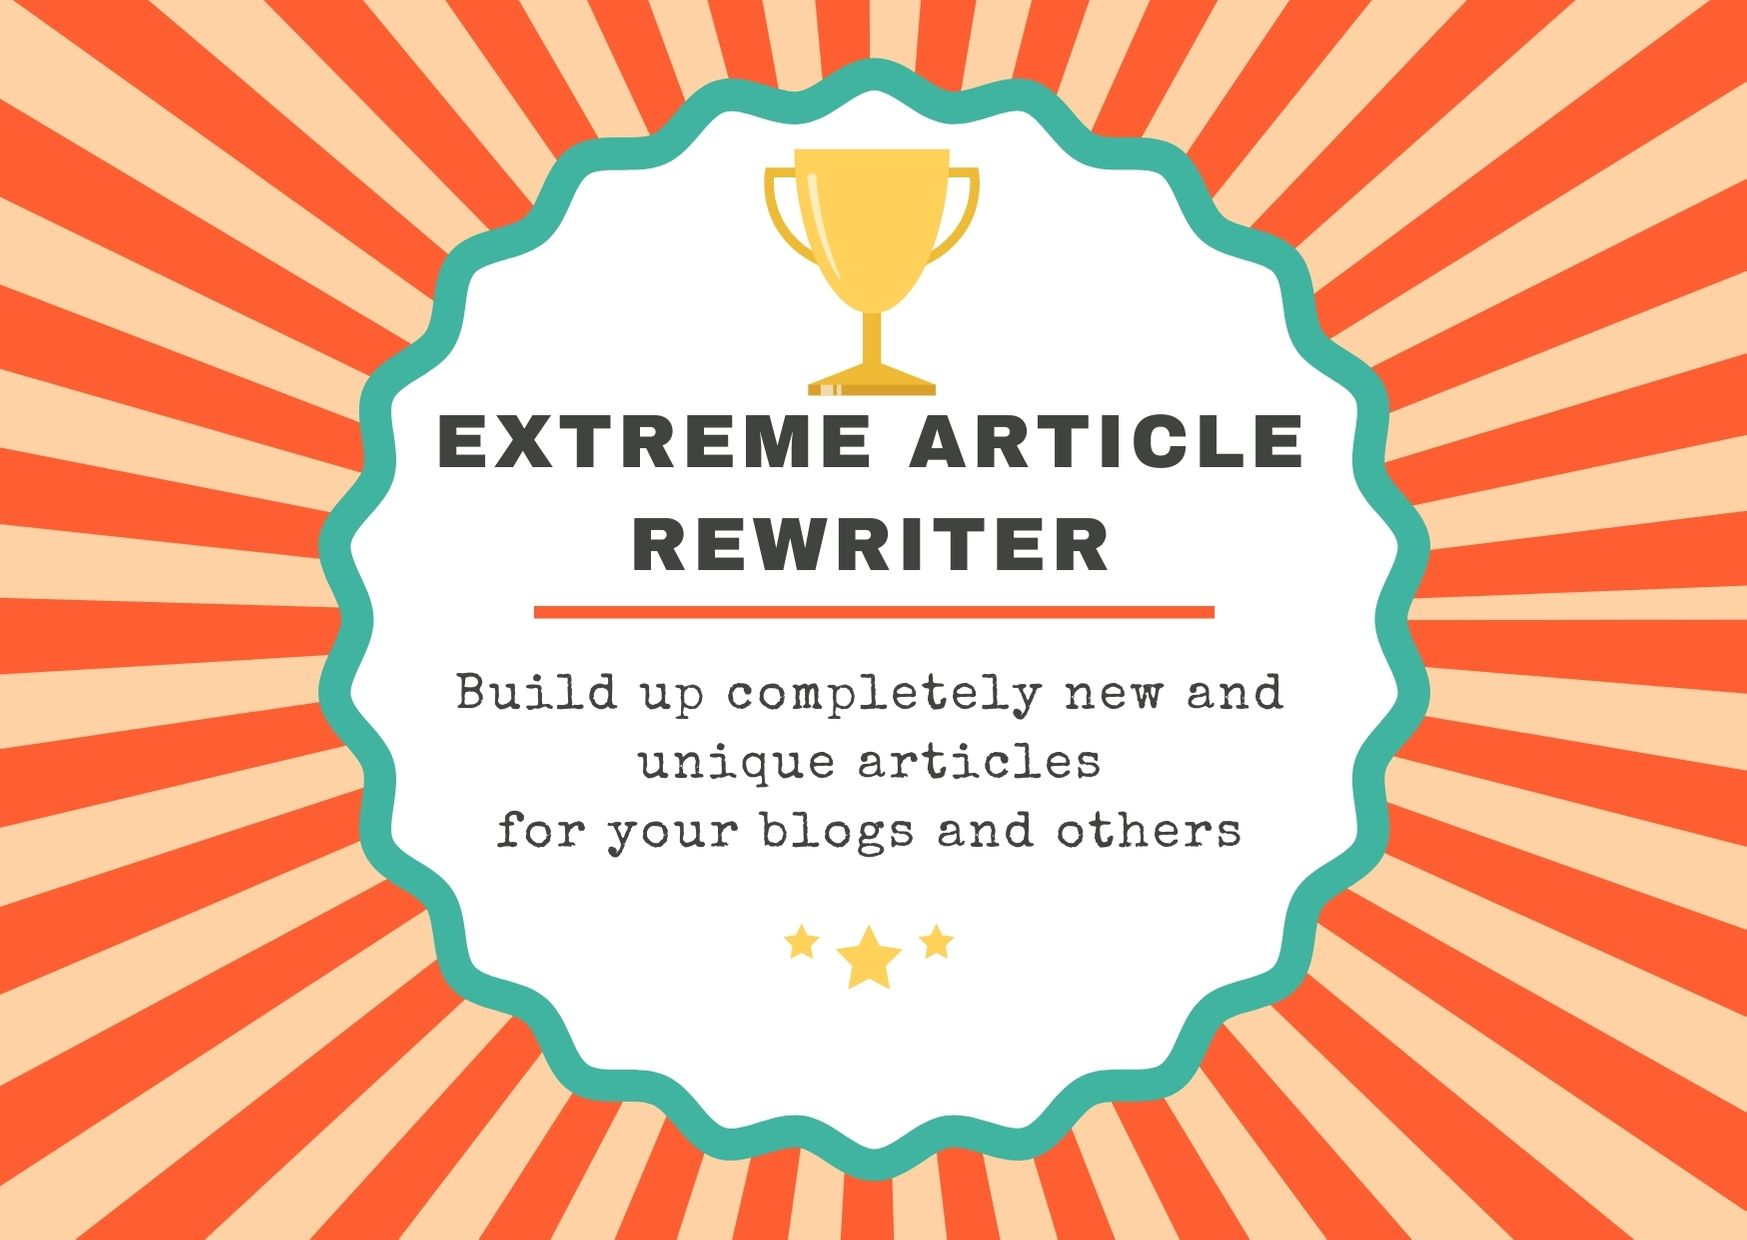 Xtreme Article Rewriter- Build up a completely new and unique articles